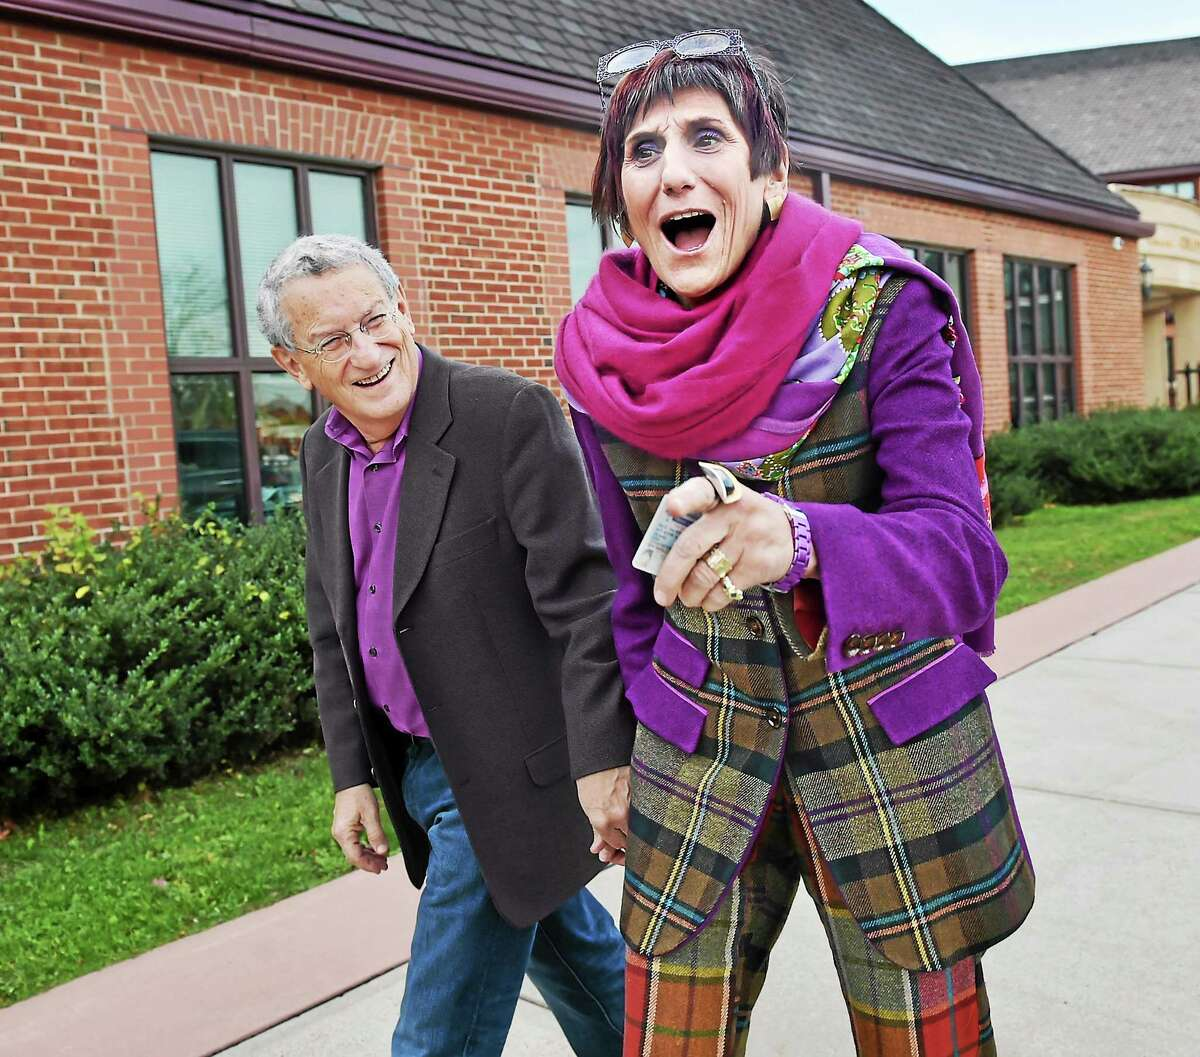 U.S. Rep. Rosa L. DeLauro and her husband, political strategist Stanley Greenberg, arrive at Celentano Biotech, Health and Medical Magnet School on Canner Street in New Haven to vote Tuesday.